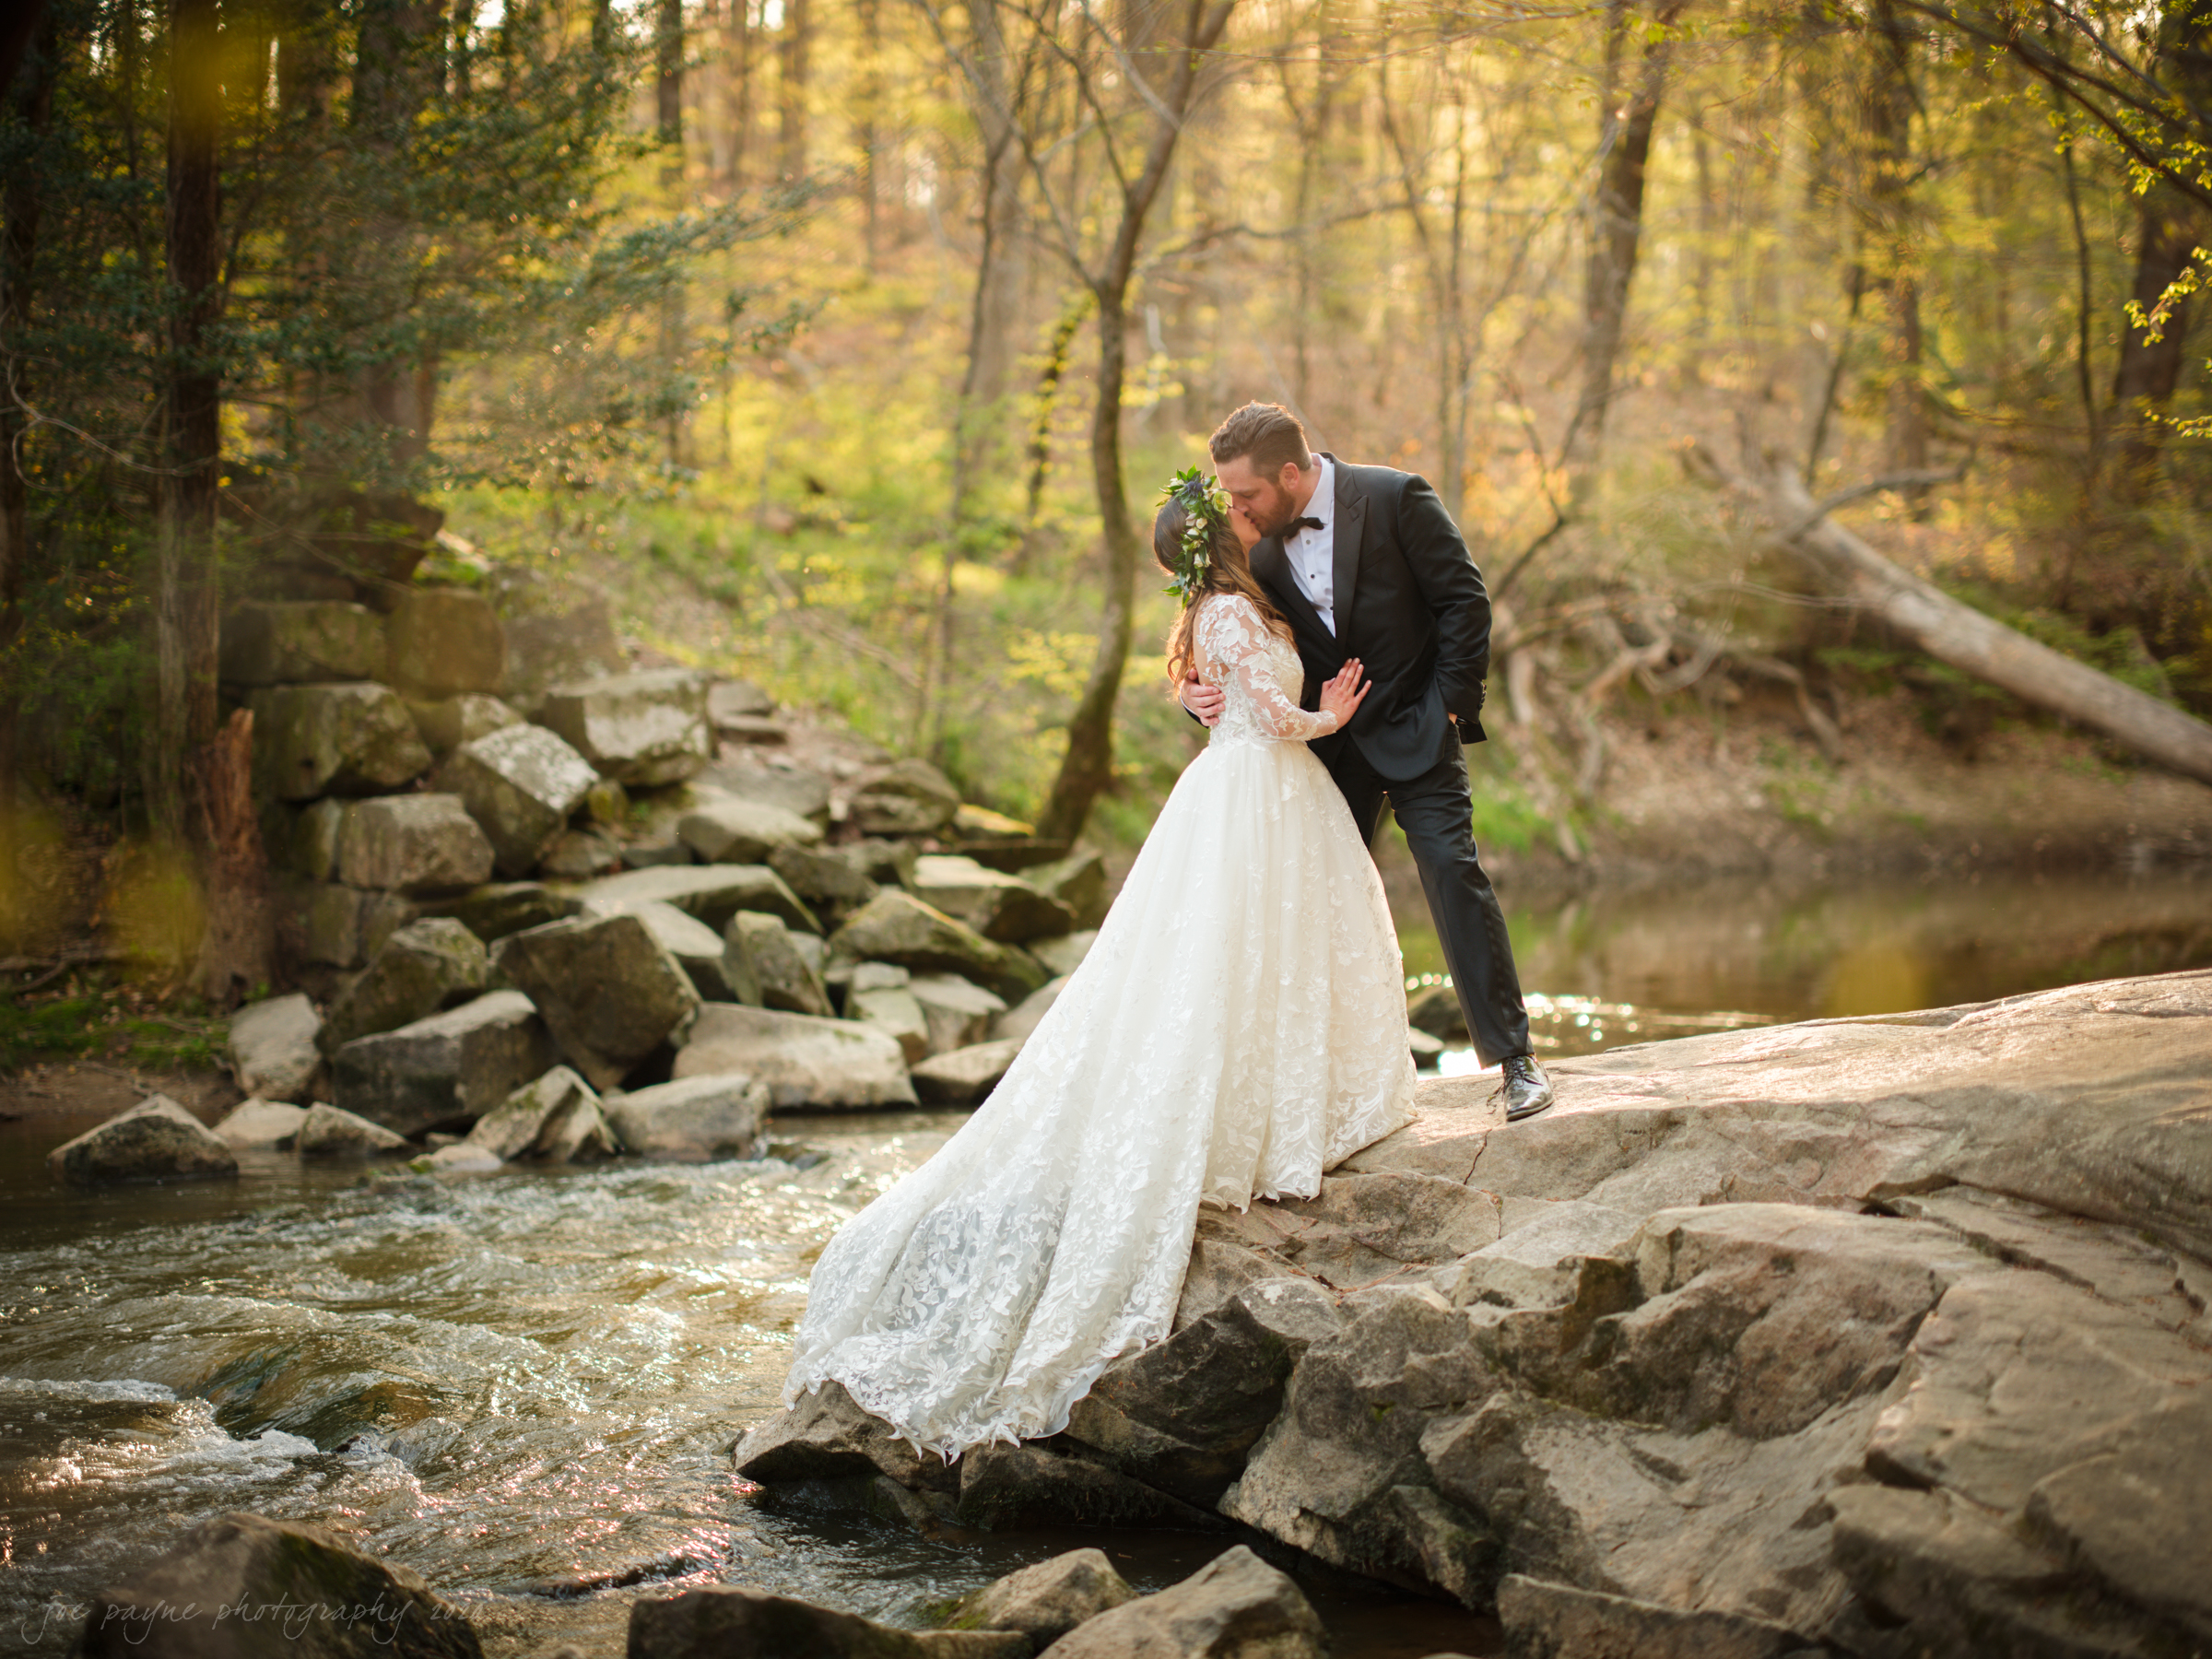 umstead hotel park wedding photography brittany harrison 1 2